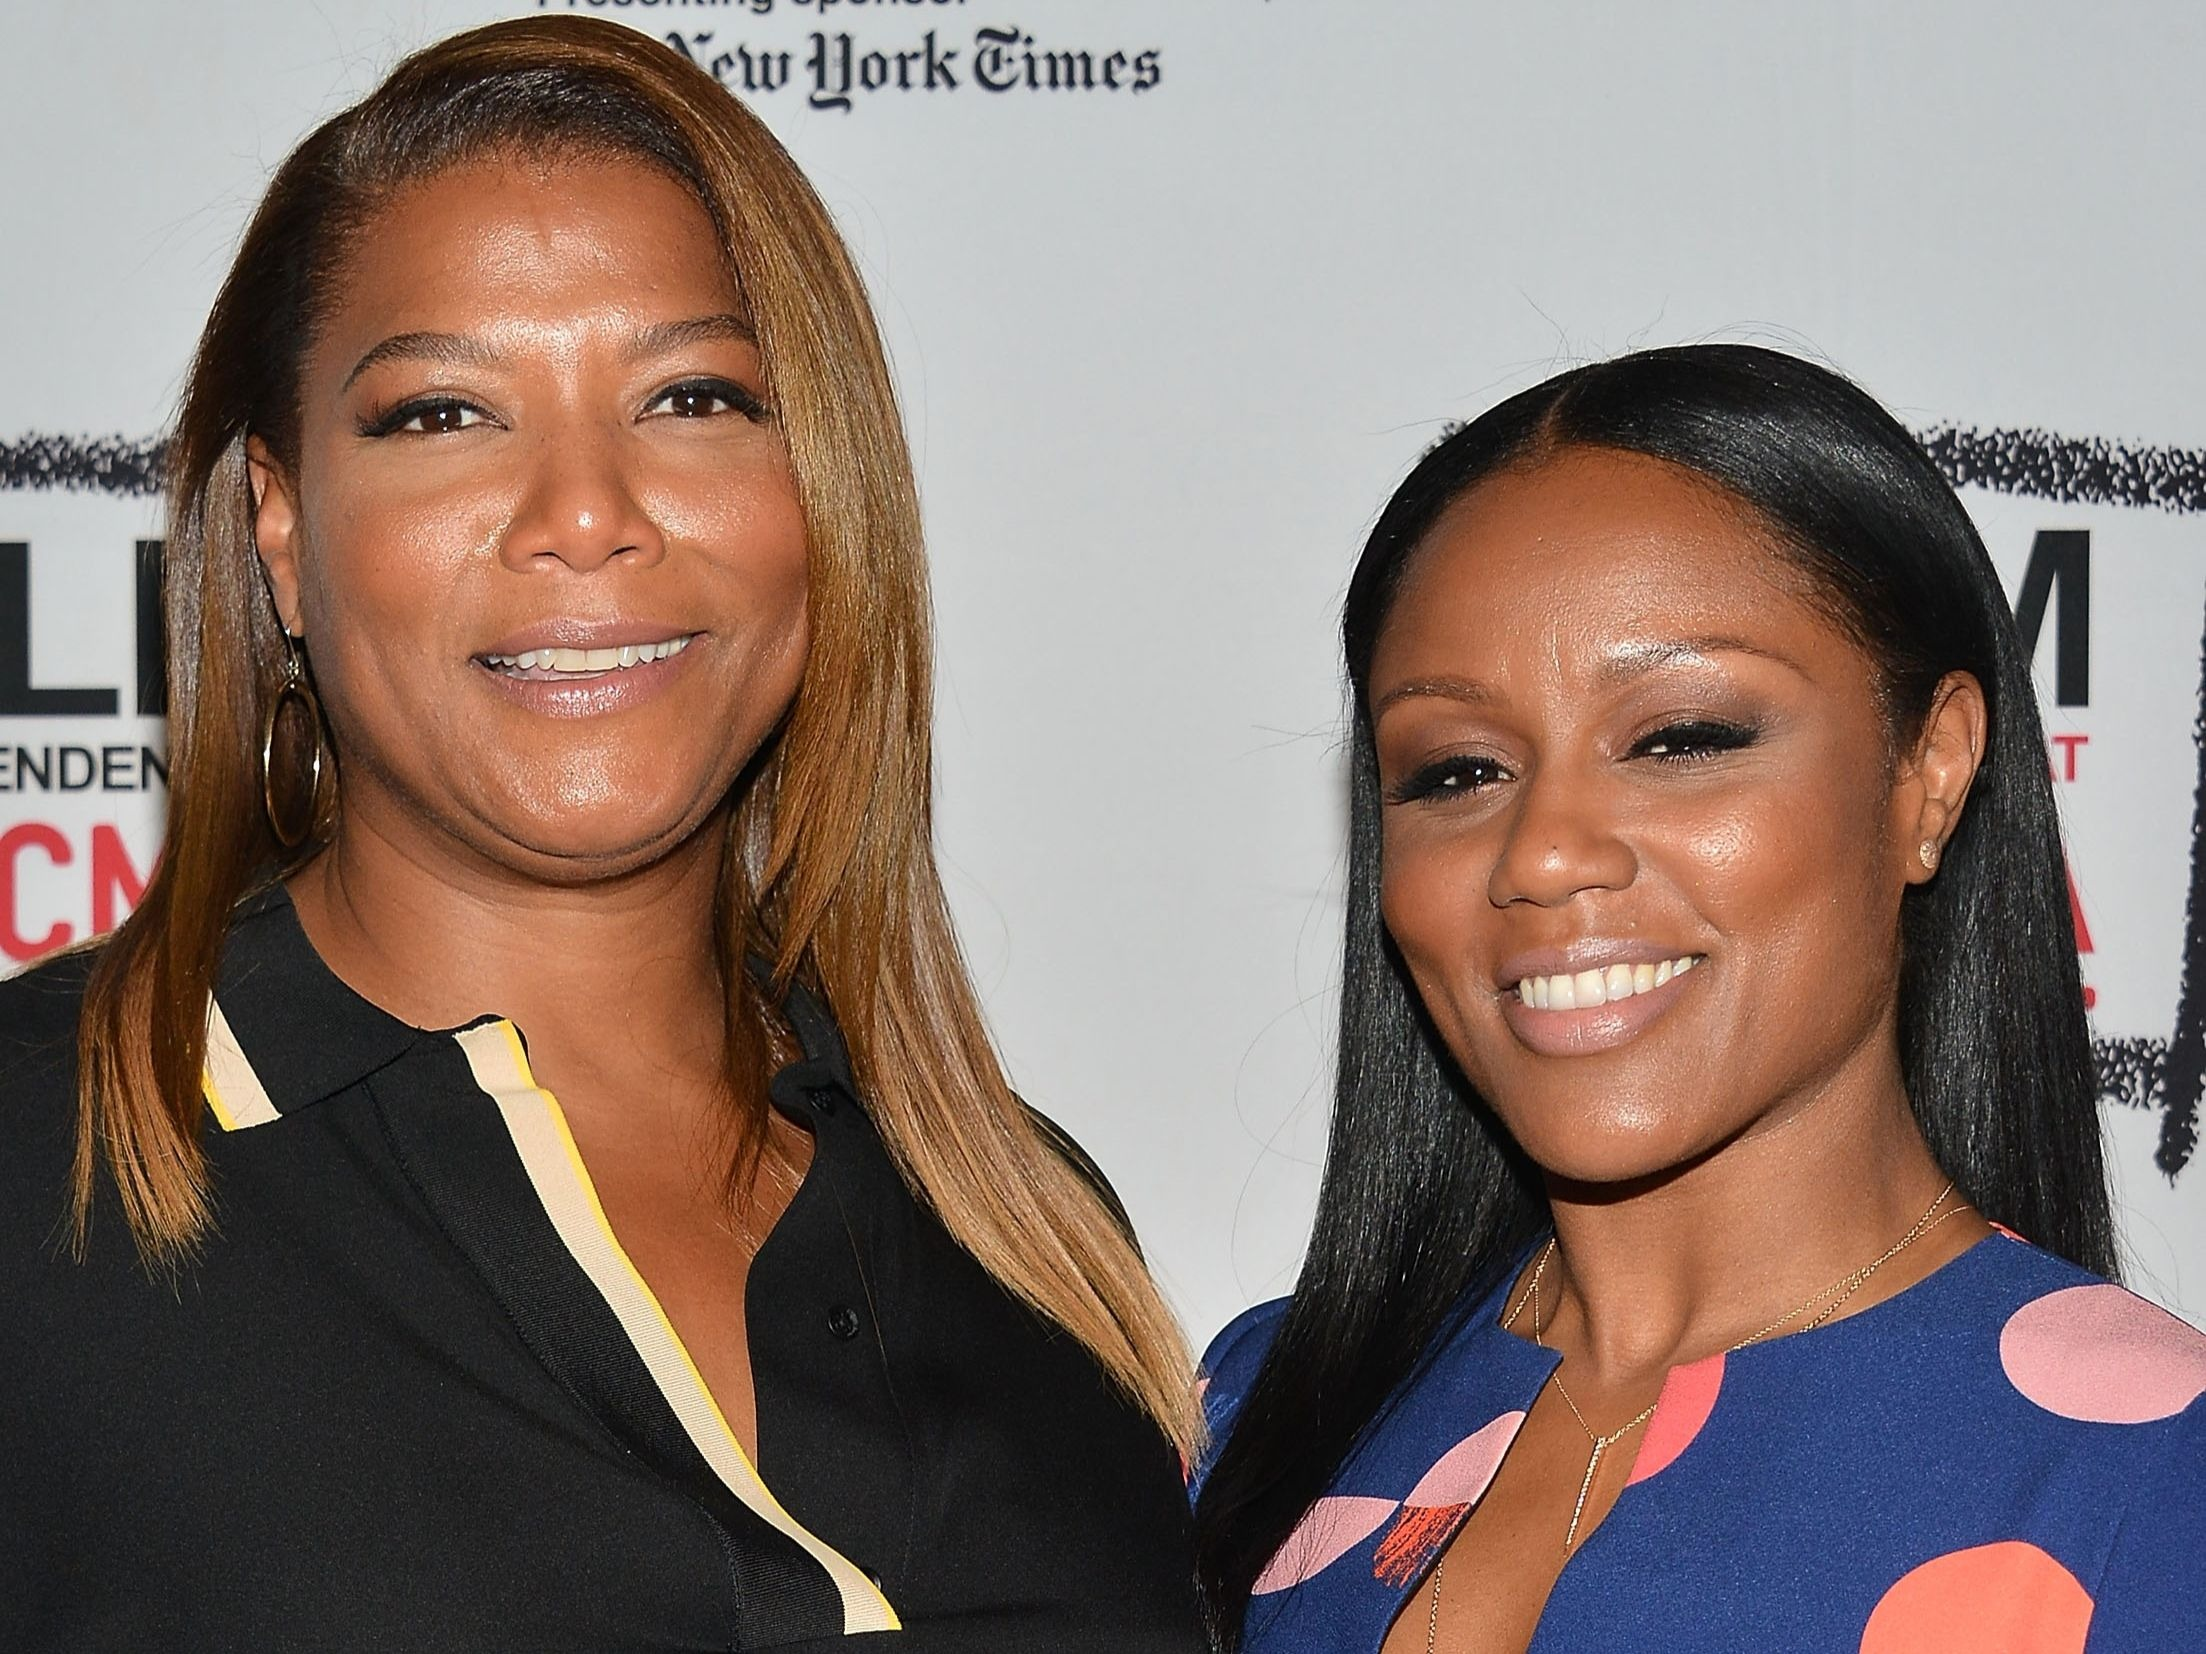 Queen Latifah & Fiancée Expecting Baby Soon